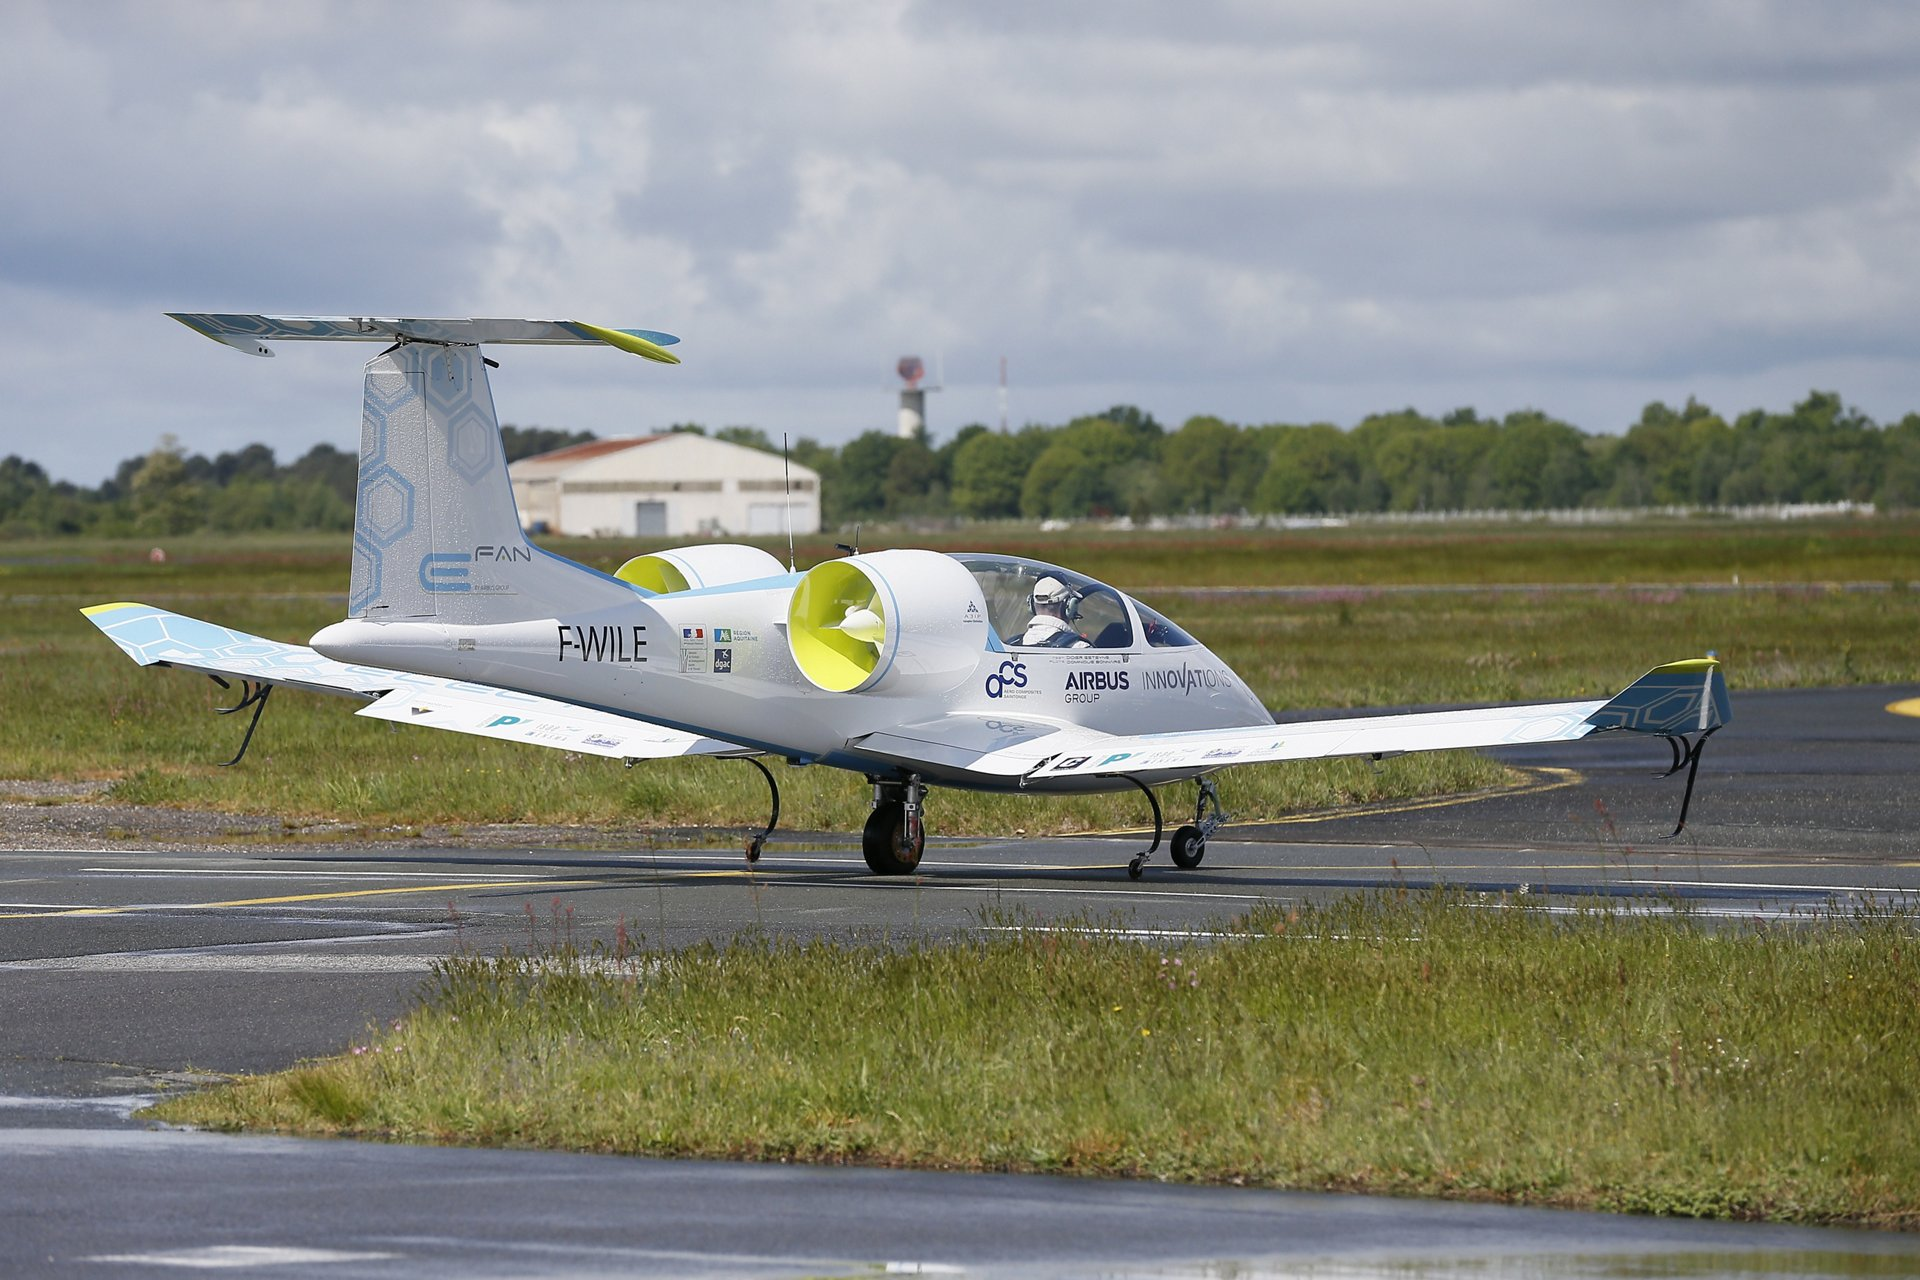 A side view of E-Fan 1.0, the first electric aircraft demonstrator developed in the Airbus portfolio.